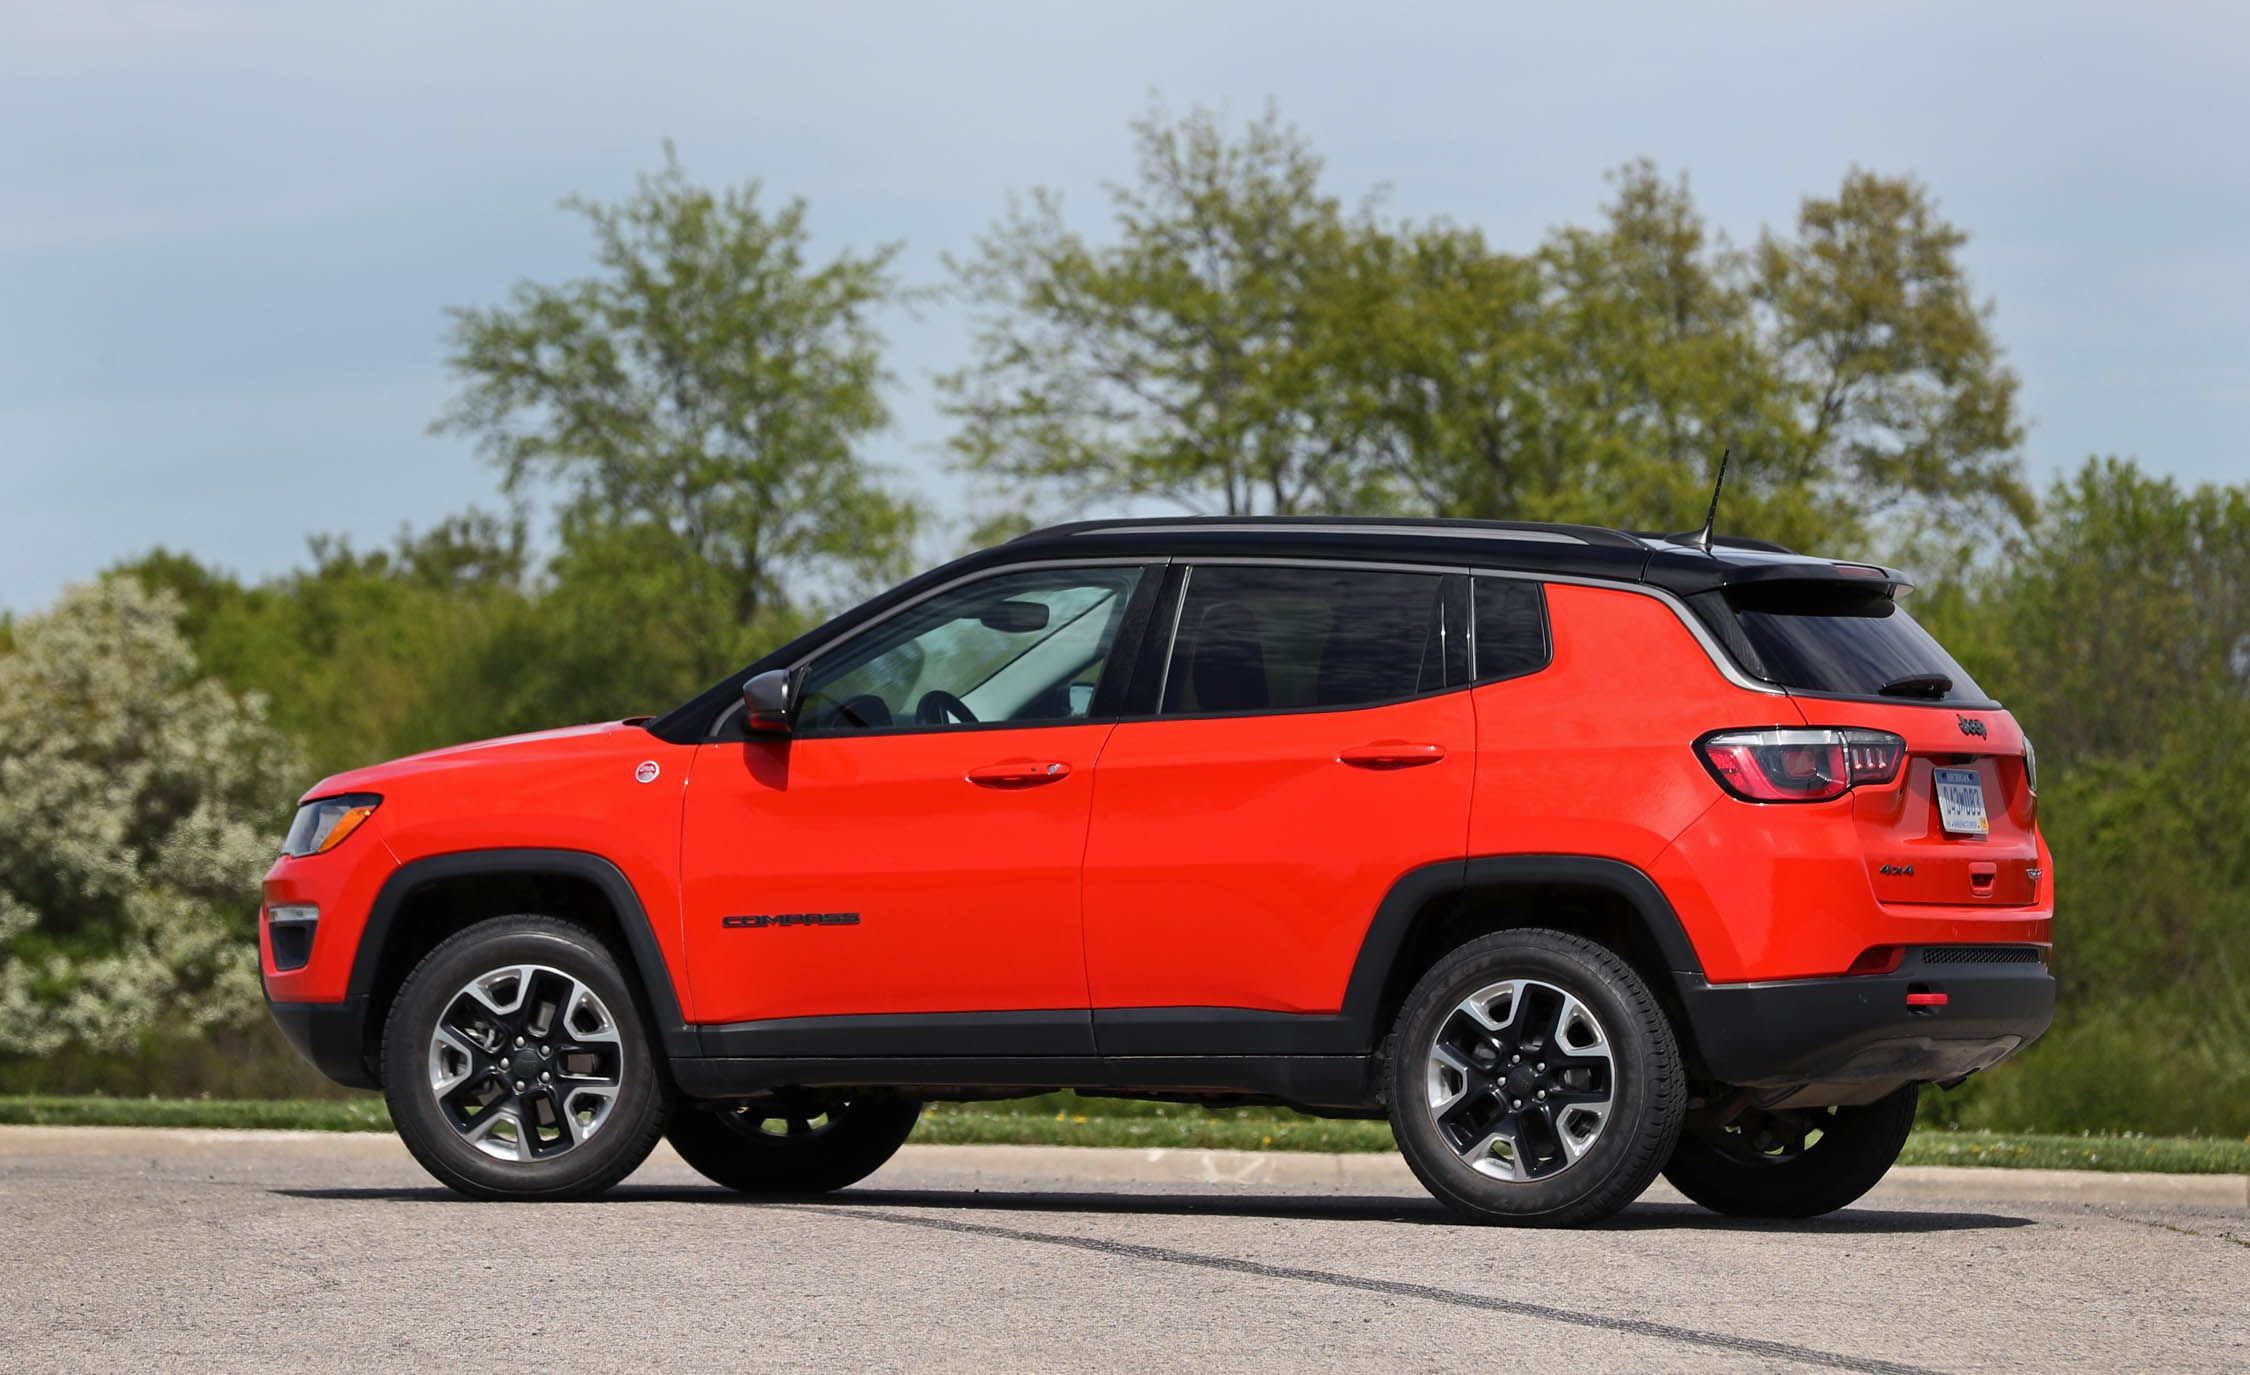 2017 Jeep Compass Interior Review  Car And Driver. Auto Insurance In New Jersey. Staff Development Template Bank Account Money. Spanish Disney Channel Car Dealer In Virginia. Web Development Florida Martha Cooking School. Direct Marketing Association Mail Preference Service. Doctors Community Hospital Medical Records. Dish Network Number Of Customers. National Student Loan Phone Number